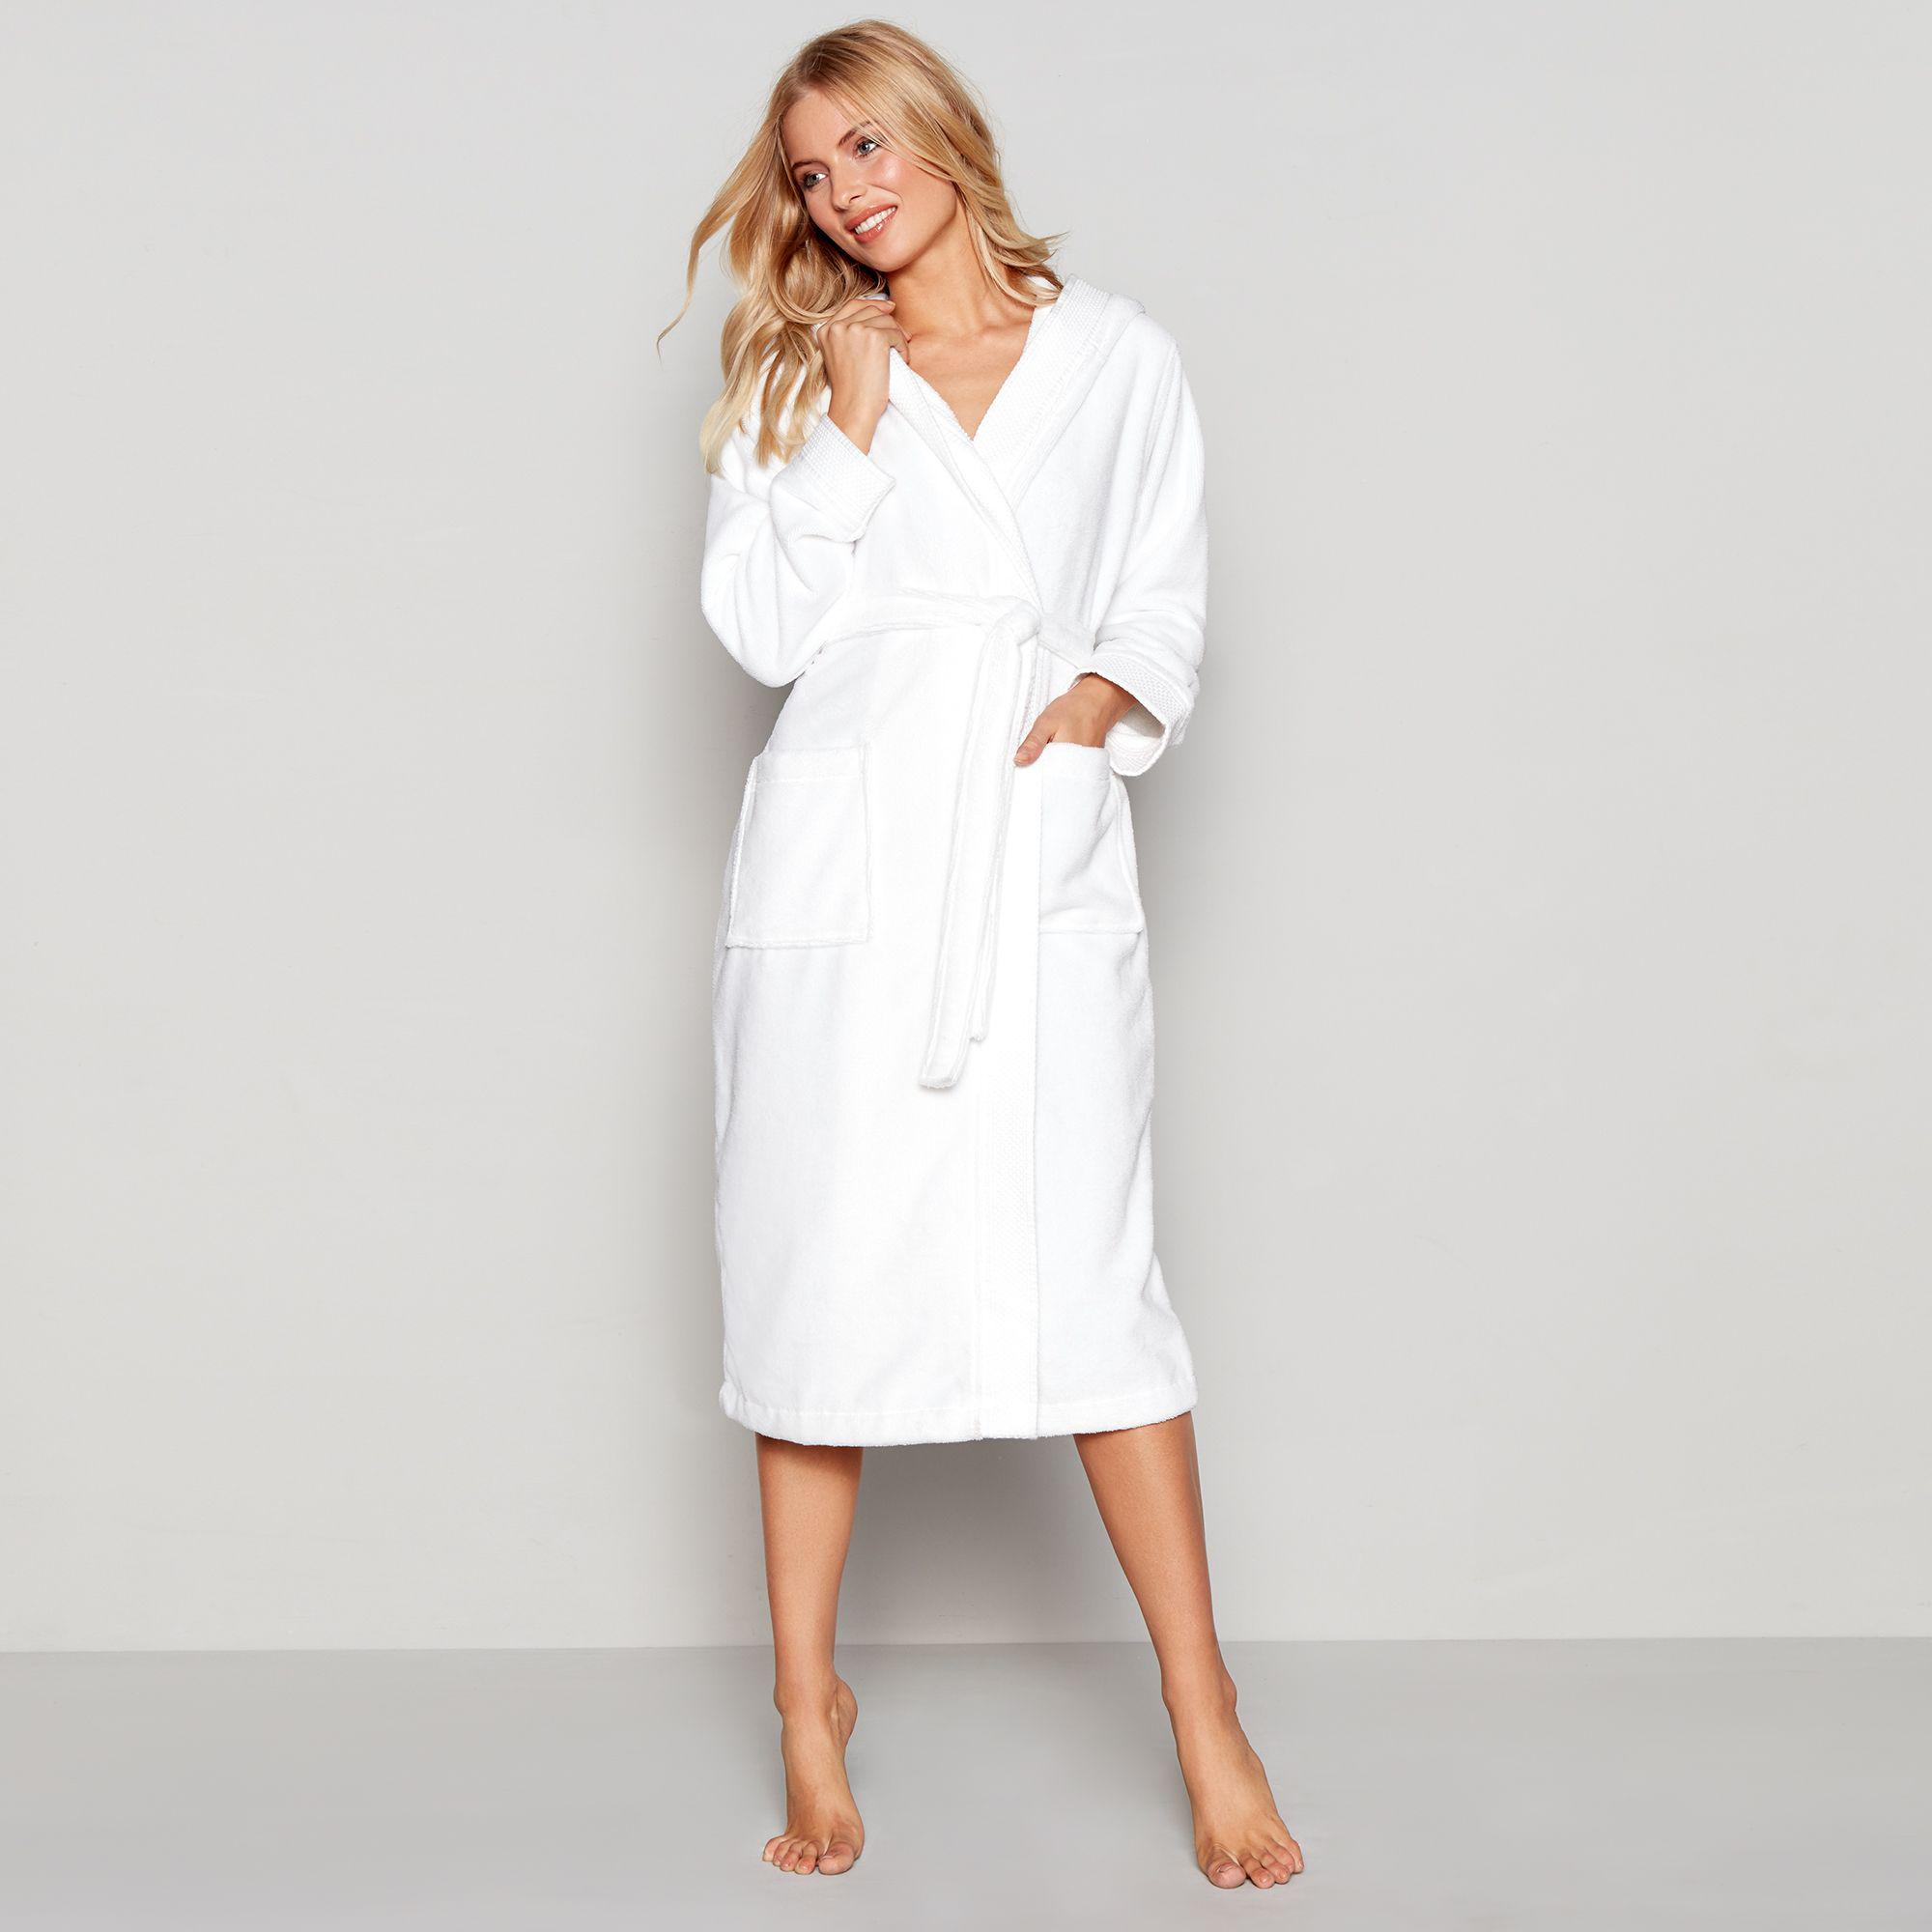 Lyst - J By Jasper Conran White Towelling Hooded Dressing Gown in White